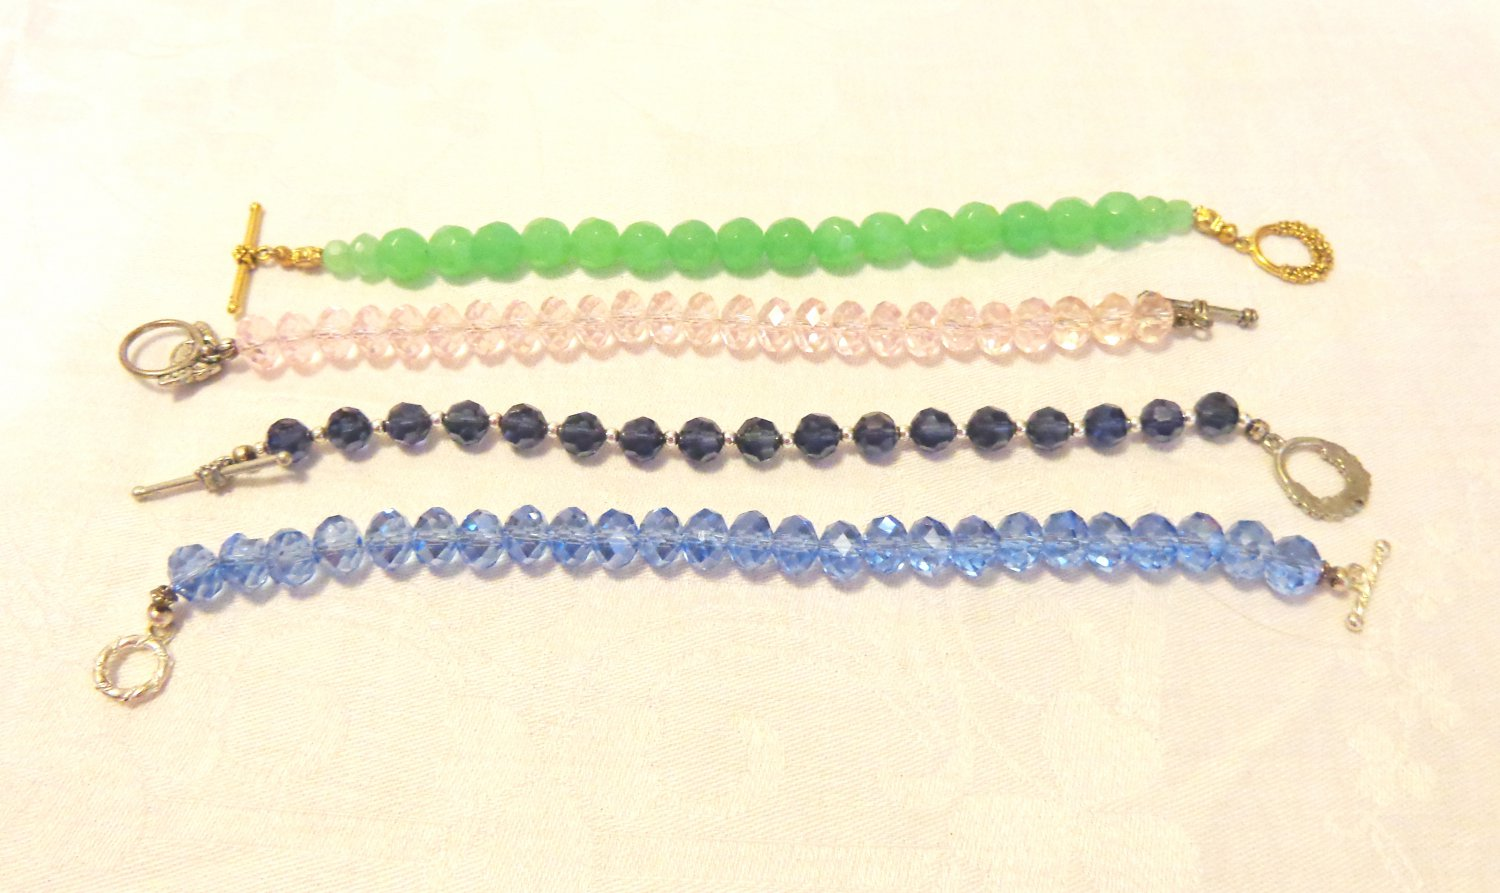 4 Handmade bead bracelets faceted crystal beads glass Lucite decorative clasps perfect ll3521